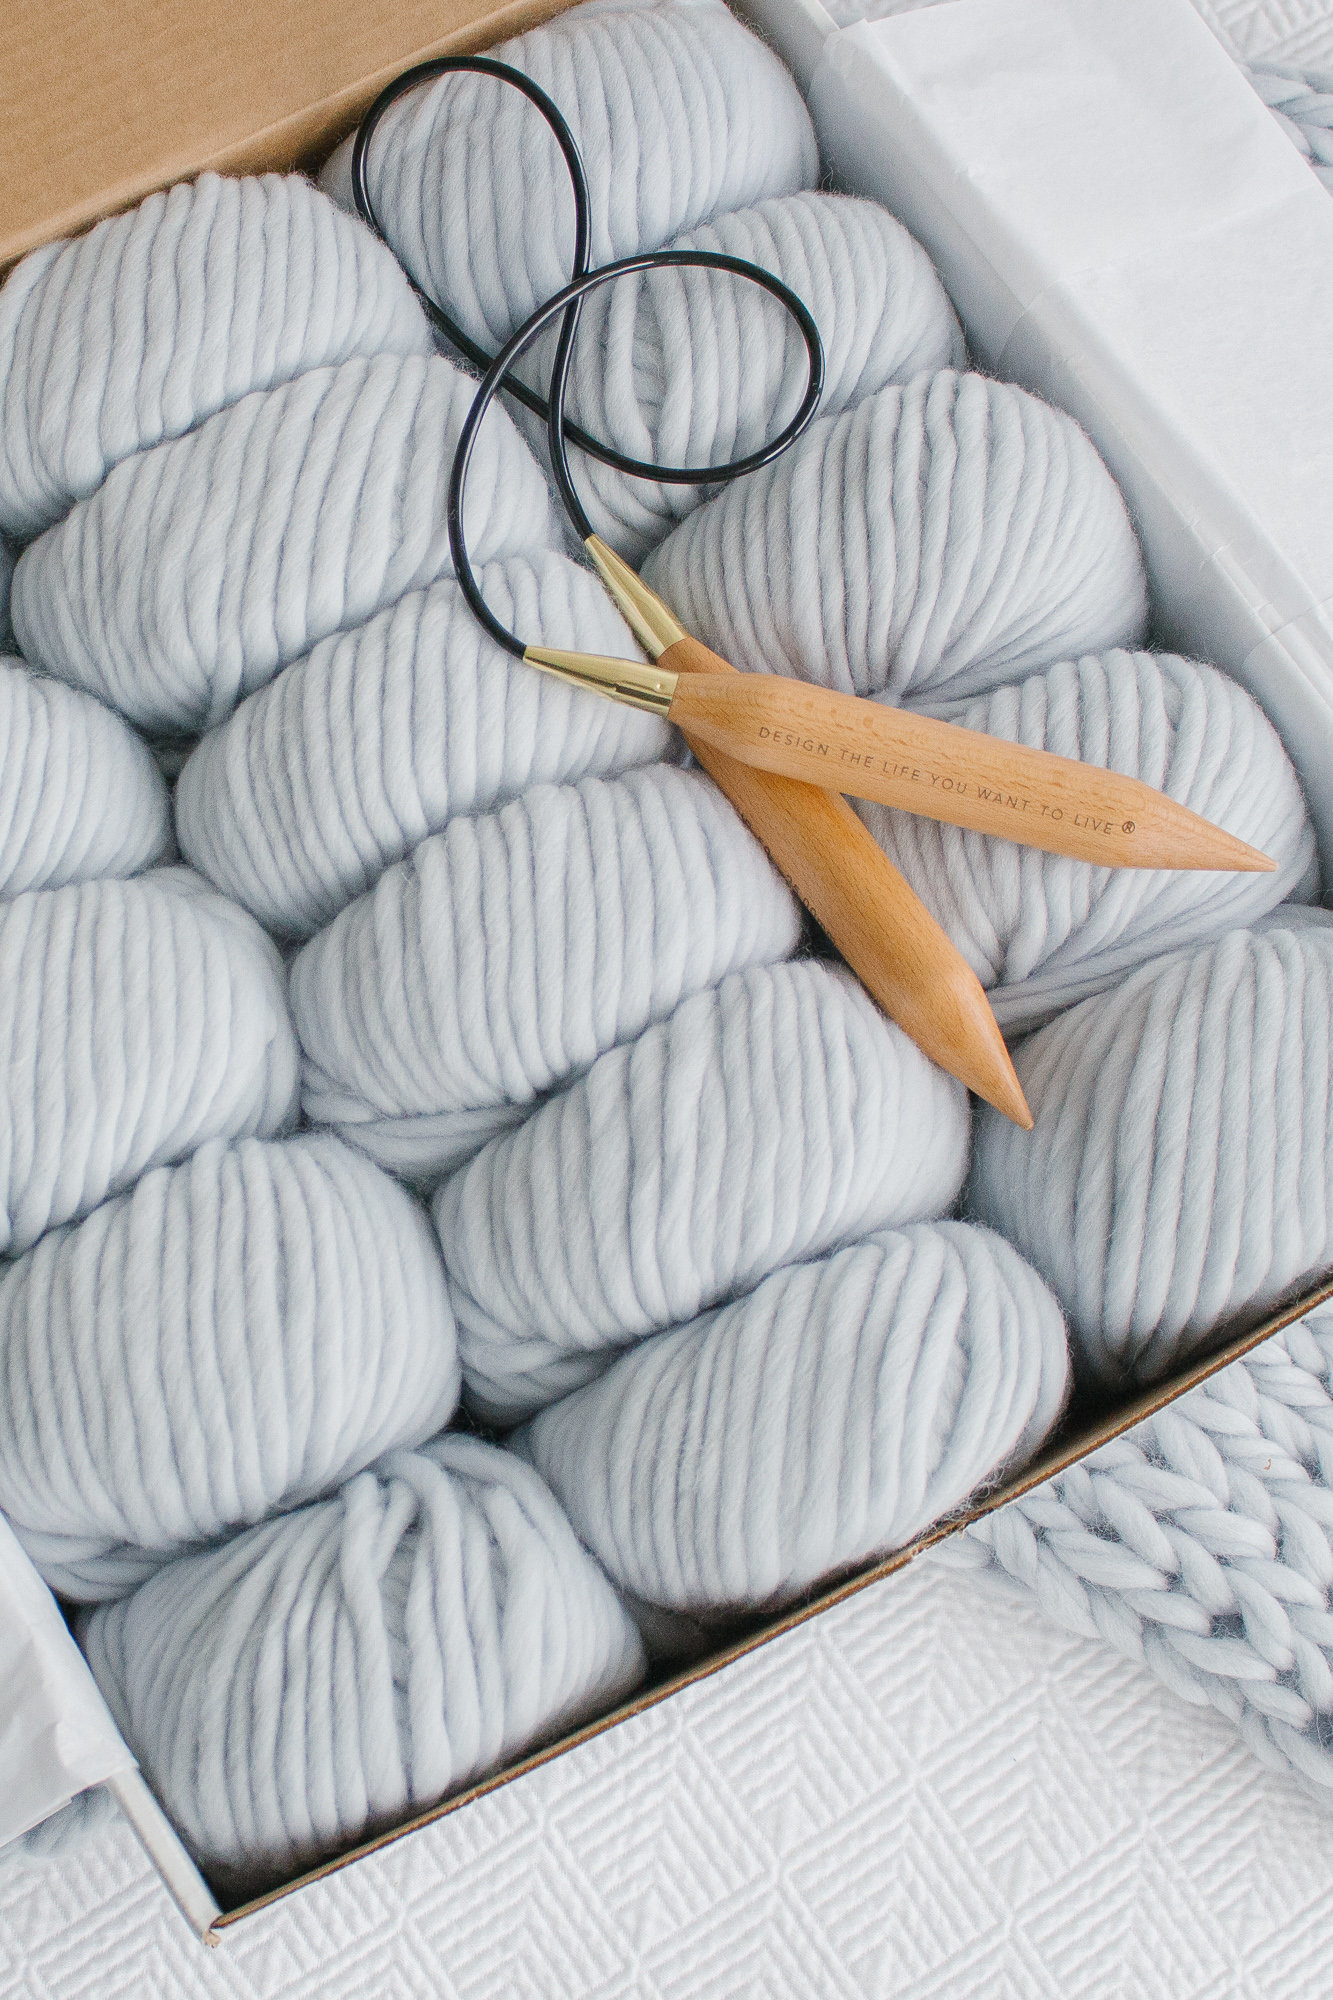 Everything you need to make the most insanely beautiful chunky knit blanket in the history of ever. Great for a beginner knitting project! Create your own chunky wool blanket in a weekend!